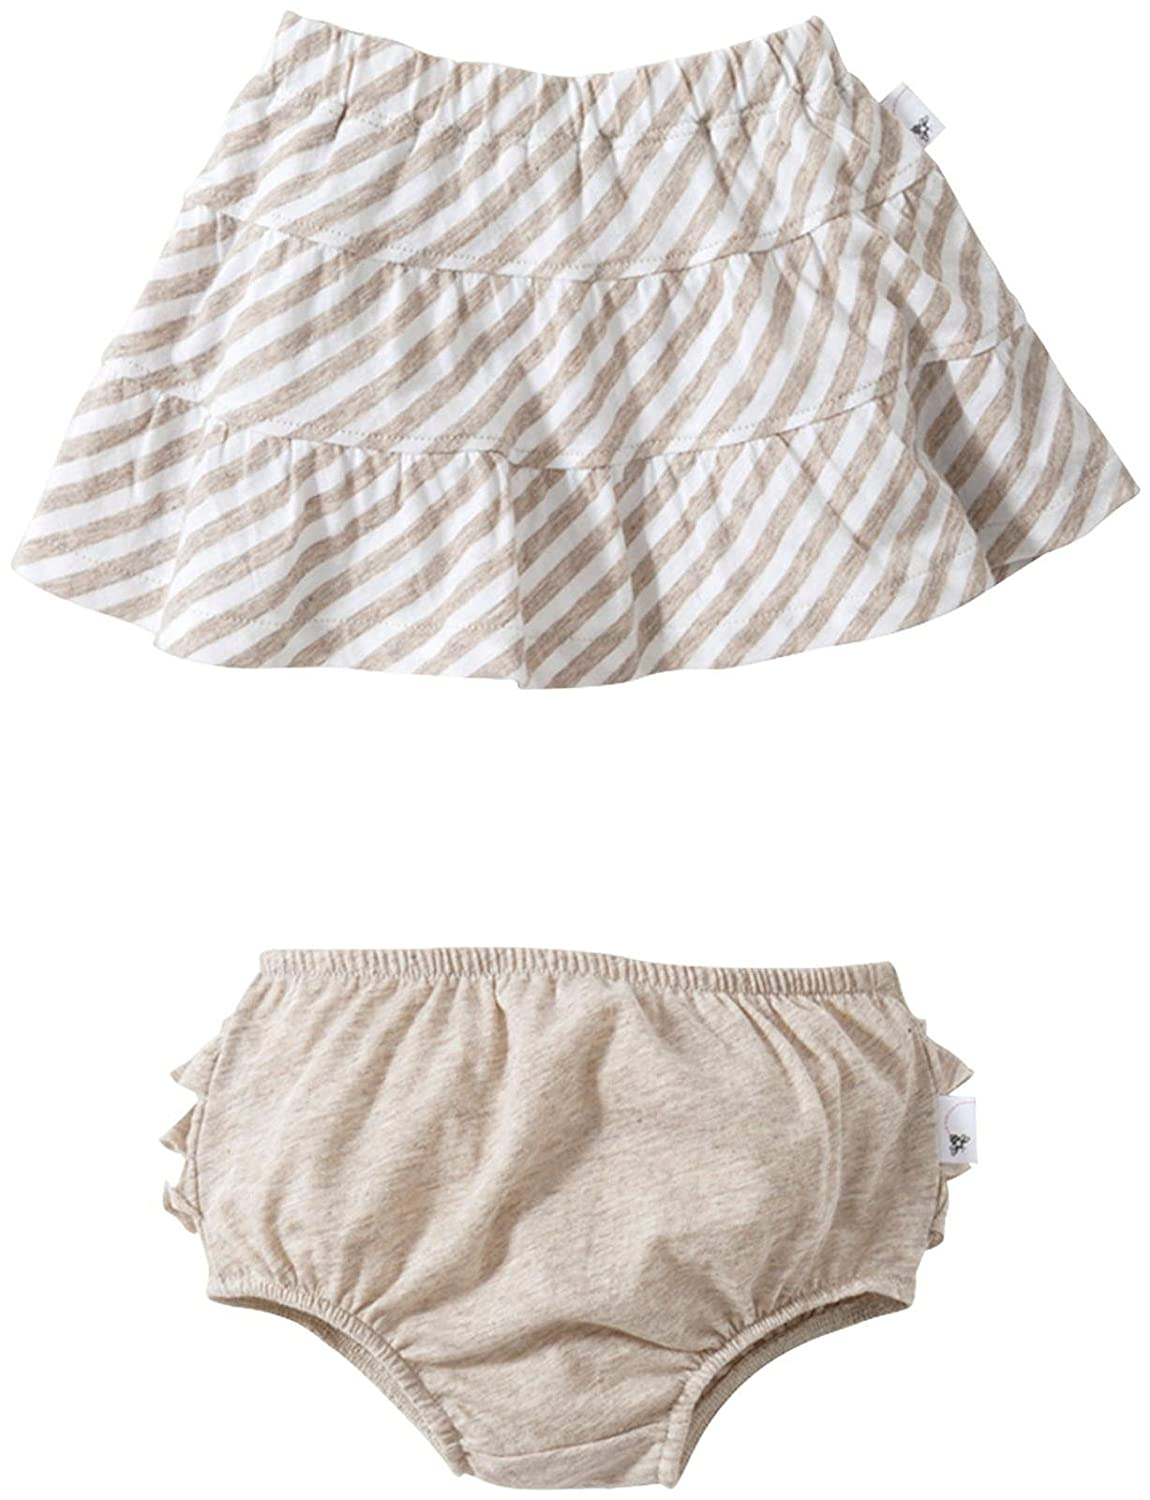 Baby Burts Bees Baby Baby Girls Striped Skirt w//Diaper Cover